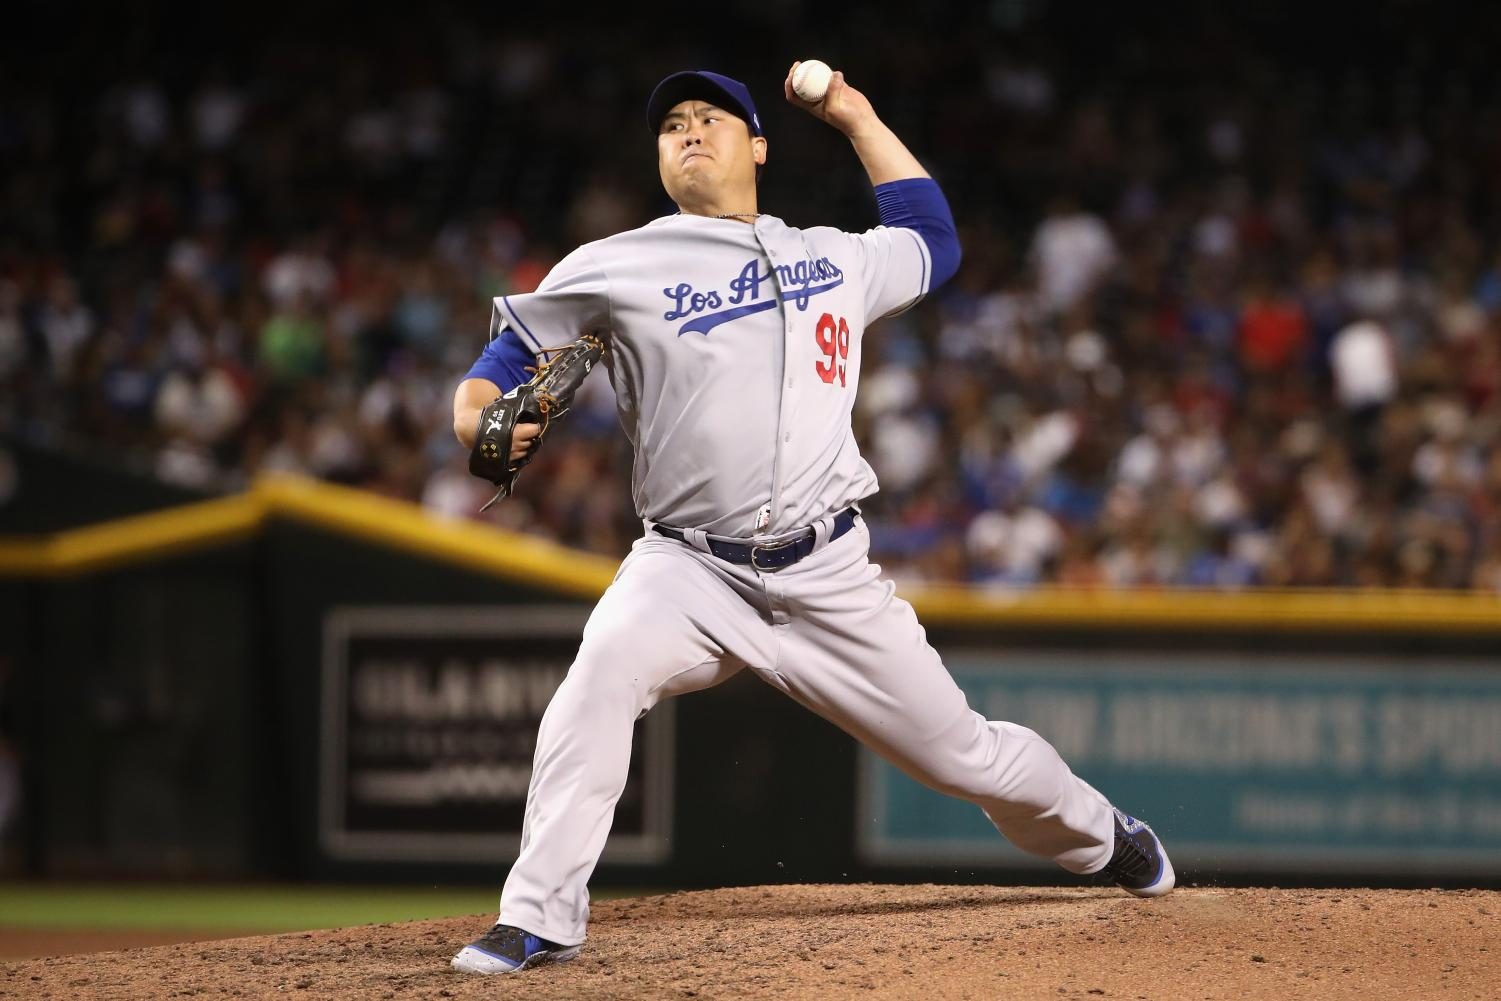 Starting pitcher Hyun-Jin Ryu #99 of the Los Angeles Dodgers pitches against the Arizona Diamondbacks during the MLB game at Chase Field, photo courtesy from Getty Images.